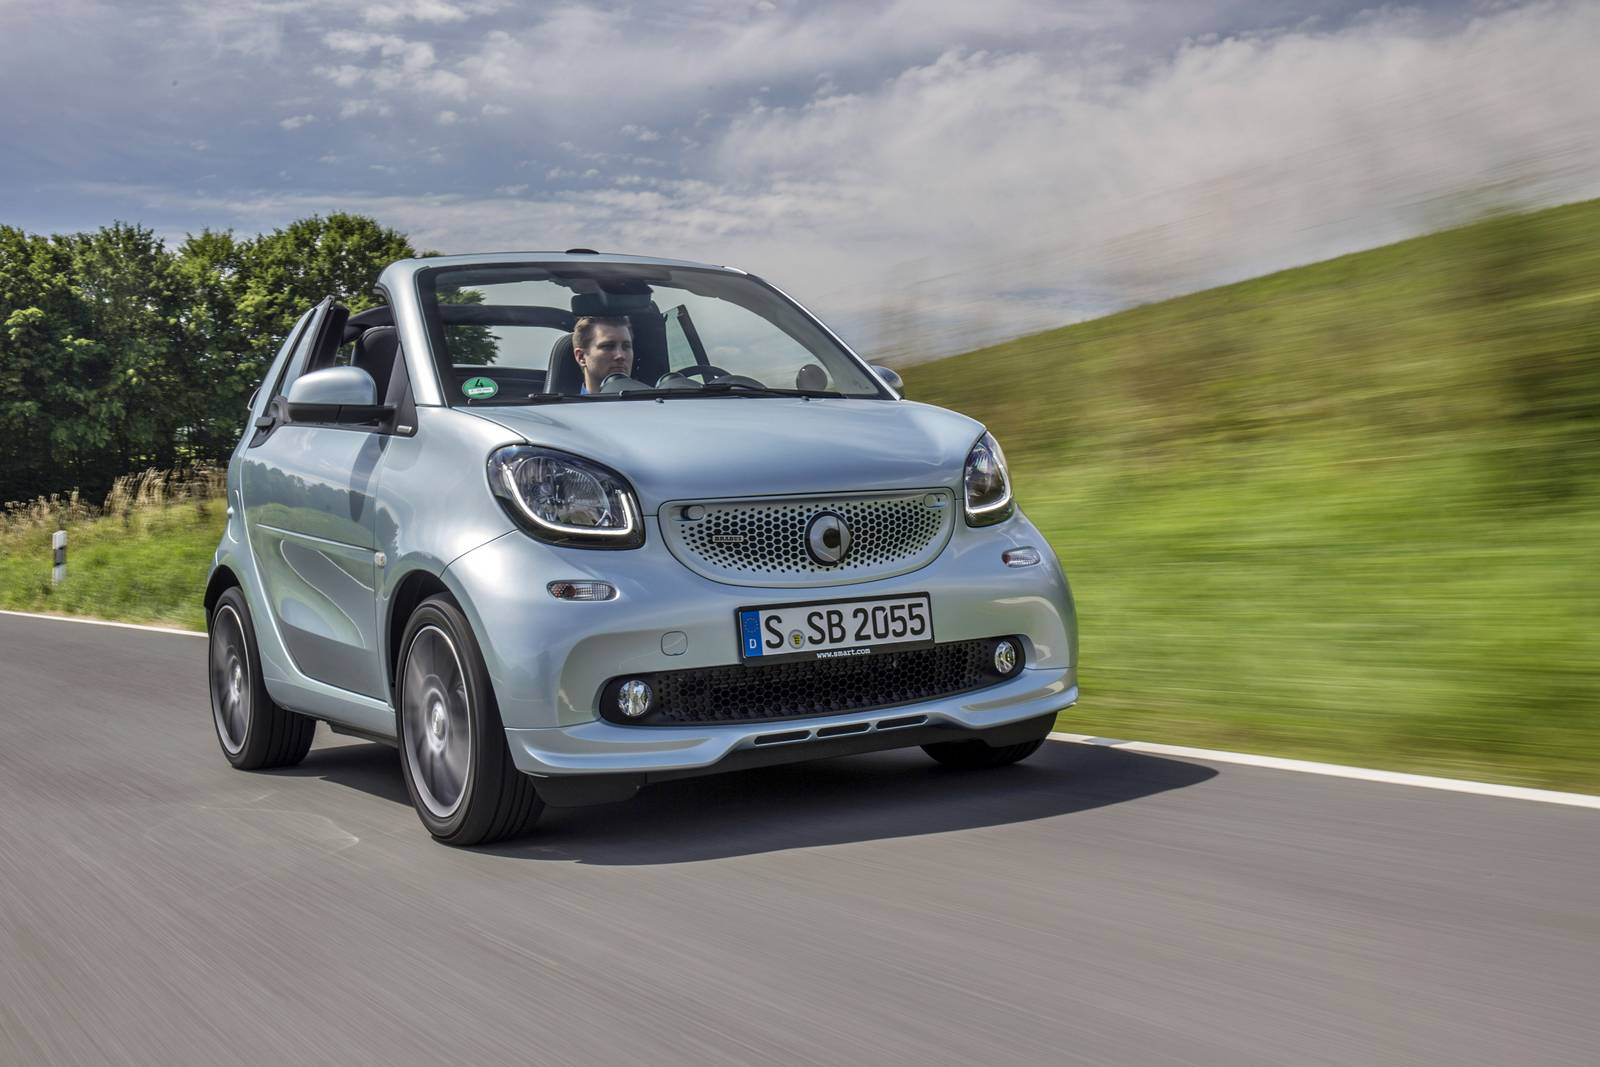 2017 smart brabus fortwo review gtspiritdriving experience